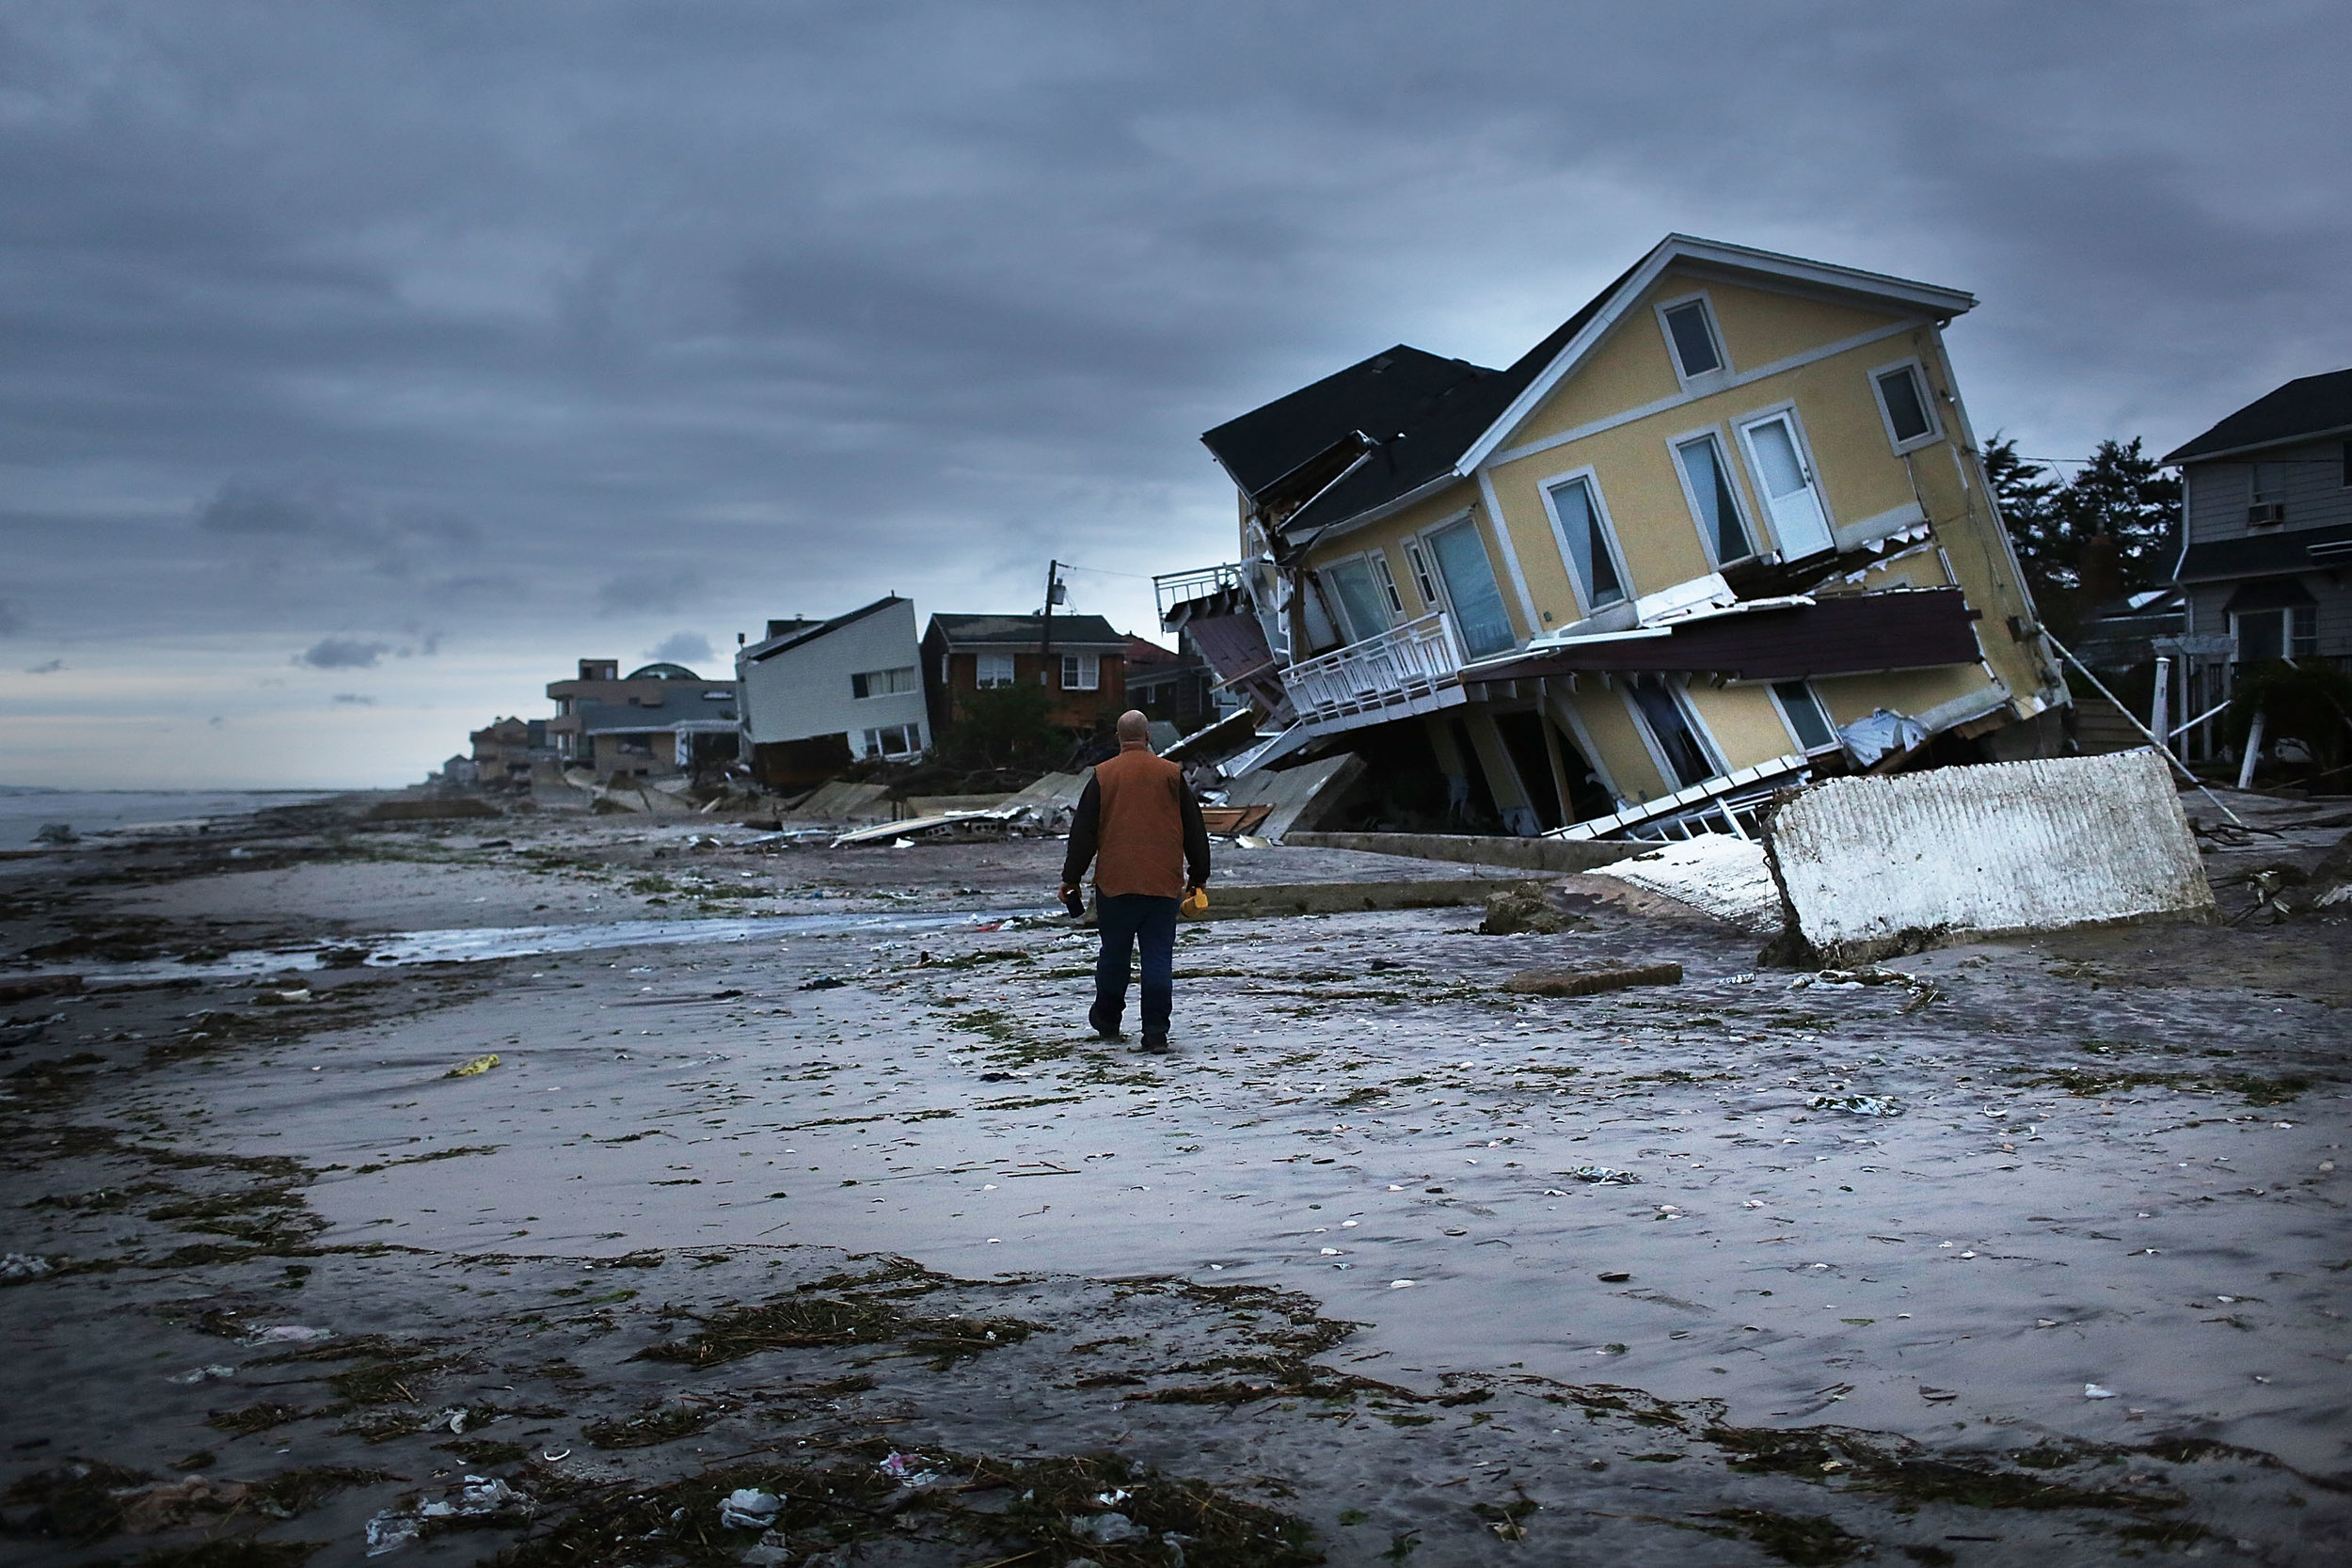 Hurricanes have increased in severity in recent years, devastating coastal cities and island nations. Photo credit: Fortune